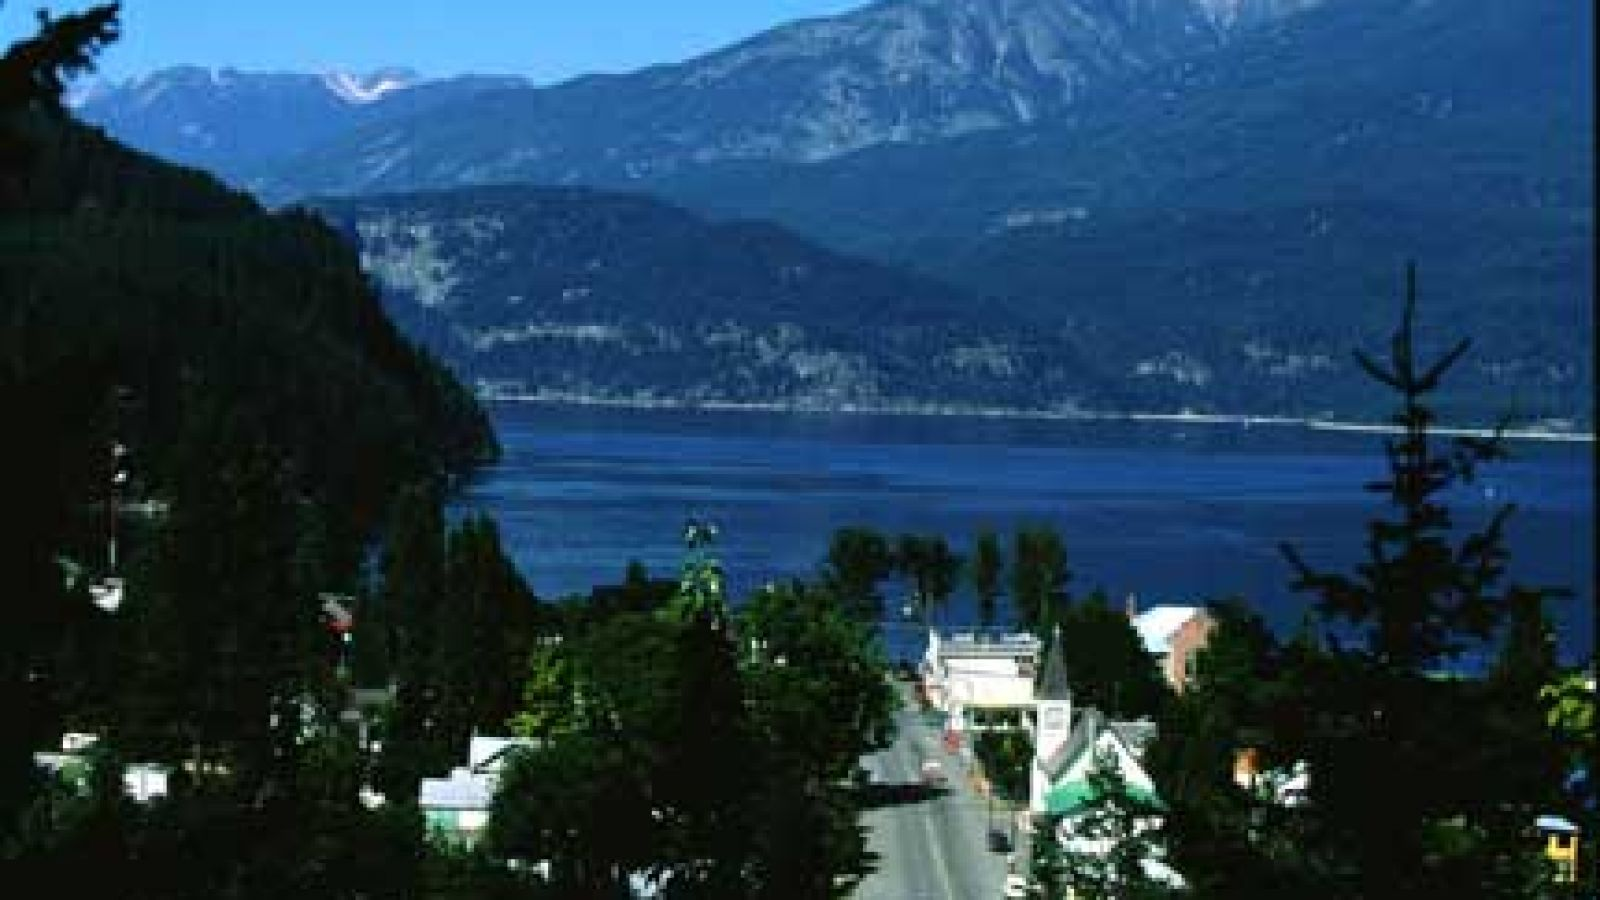 The village of Kaslo from above.